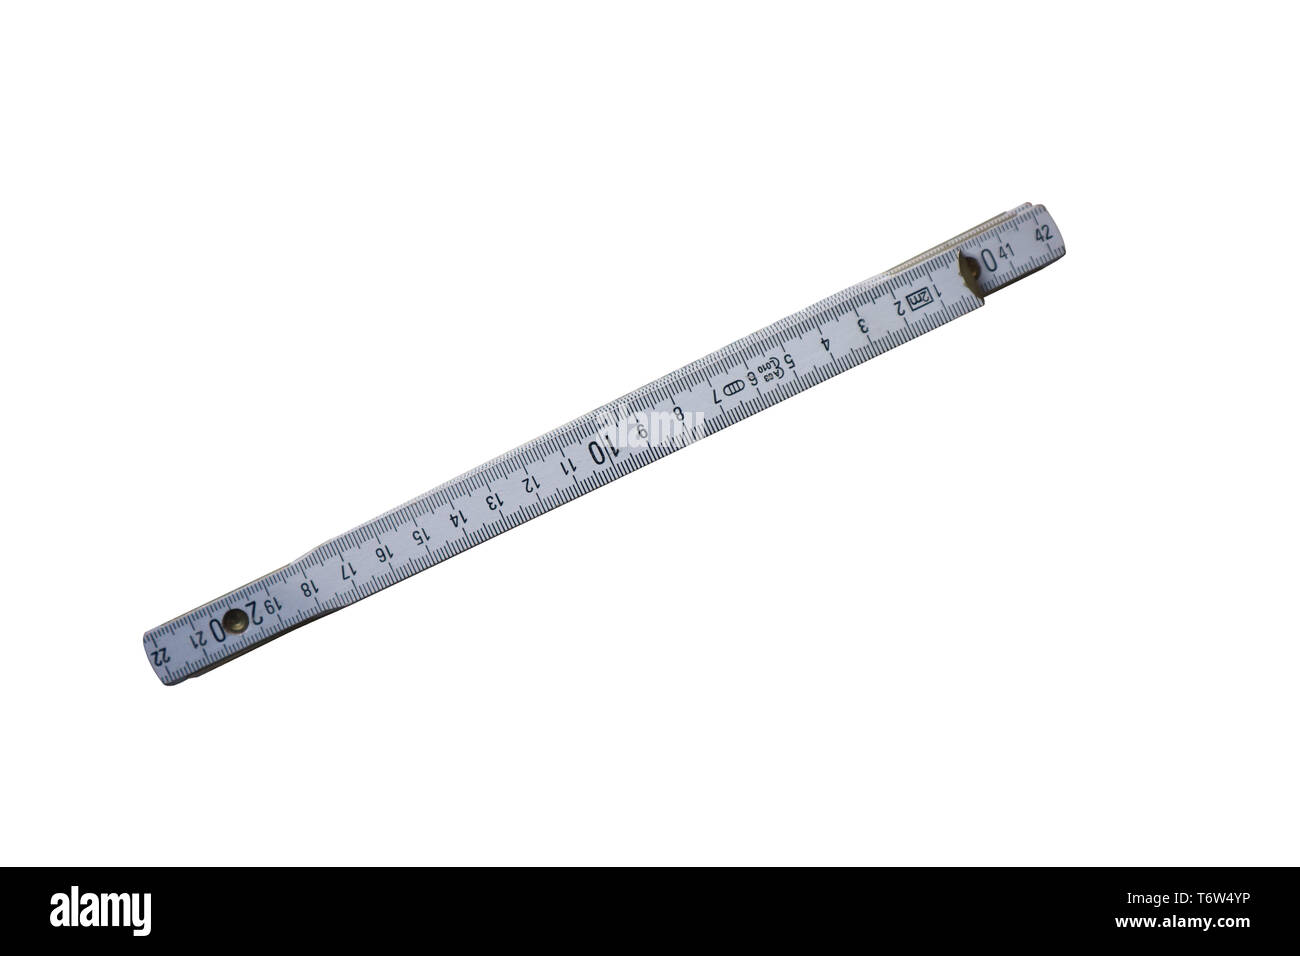 Old used measuring tool isolated on white background - Stock Image